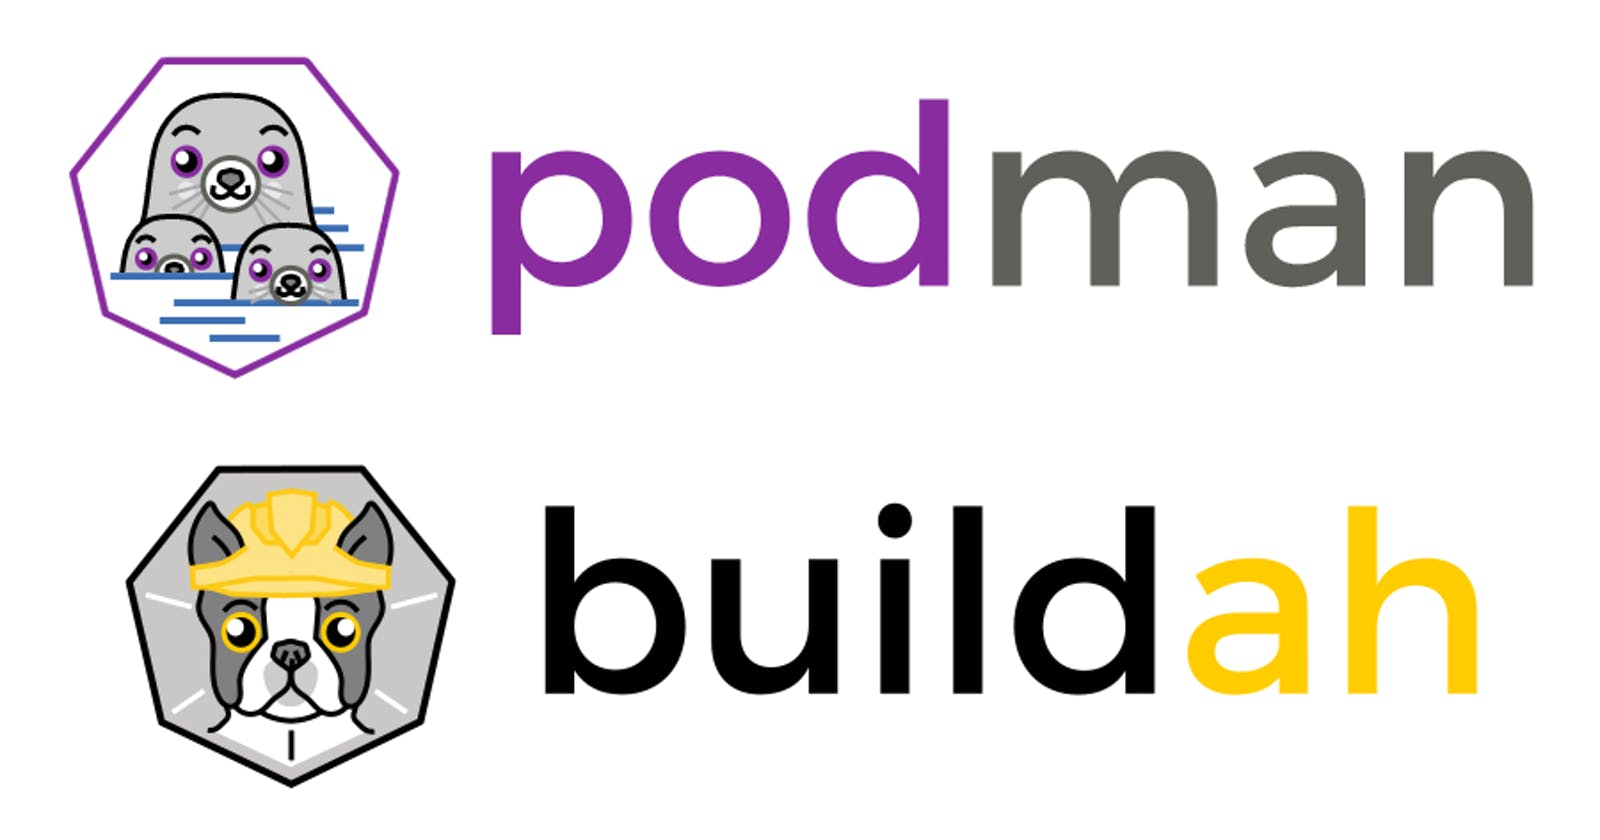 Containerize an Application With Podman and Buildah